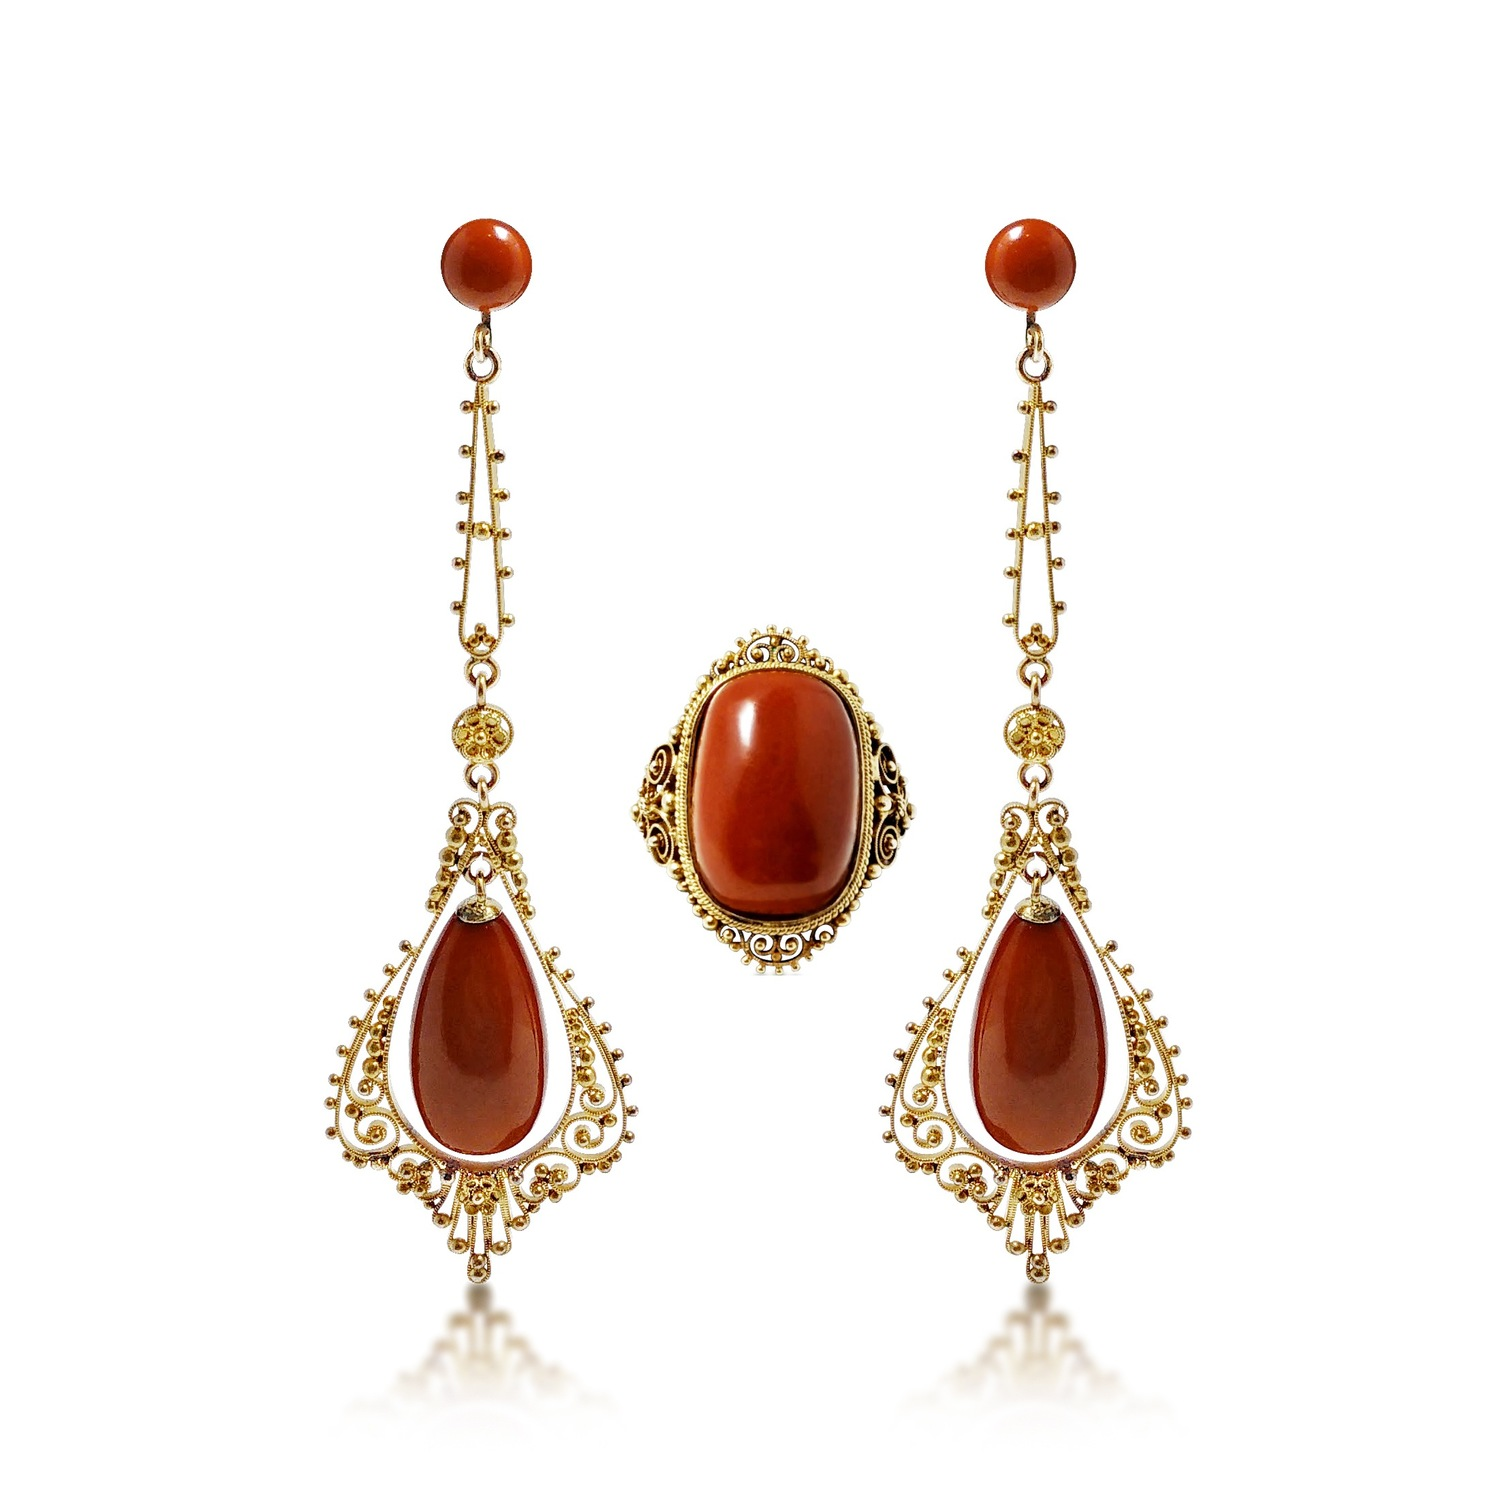 A Set of Yellow Gold and Coral Ear Pendants with Matching Ring   The vibrant hue of gorgeous red coral takes centrestage in this set, which features a pair of dangling earrings with round bead and drop-shaped coral, and a ring with a cushion-cut coral. Accentuating the gems is masterful gold beading and rope work. The ear pendants measure approximately 7.1 cm long, while the ring is sized 5.5.